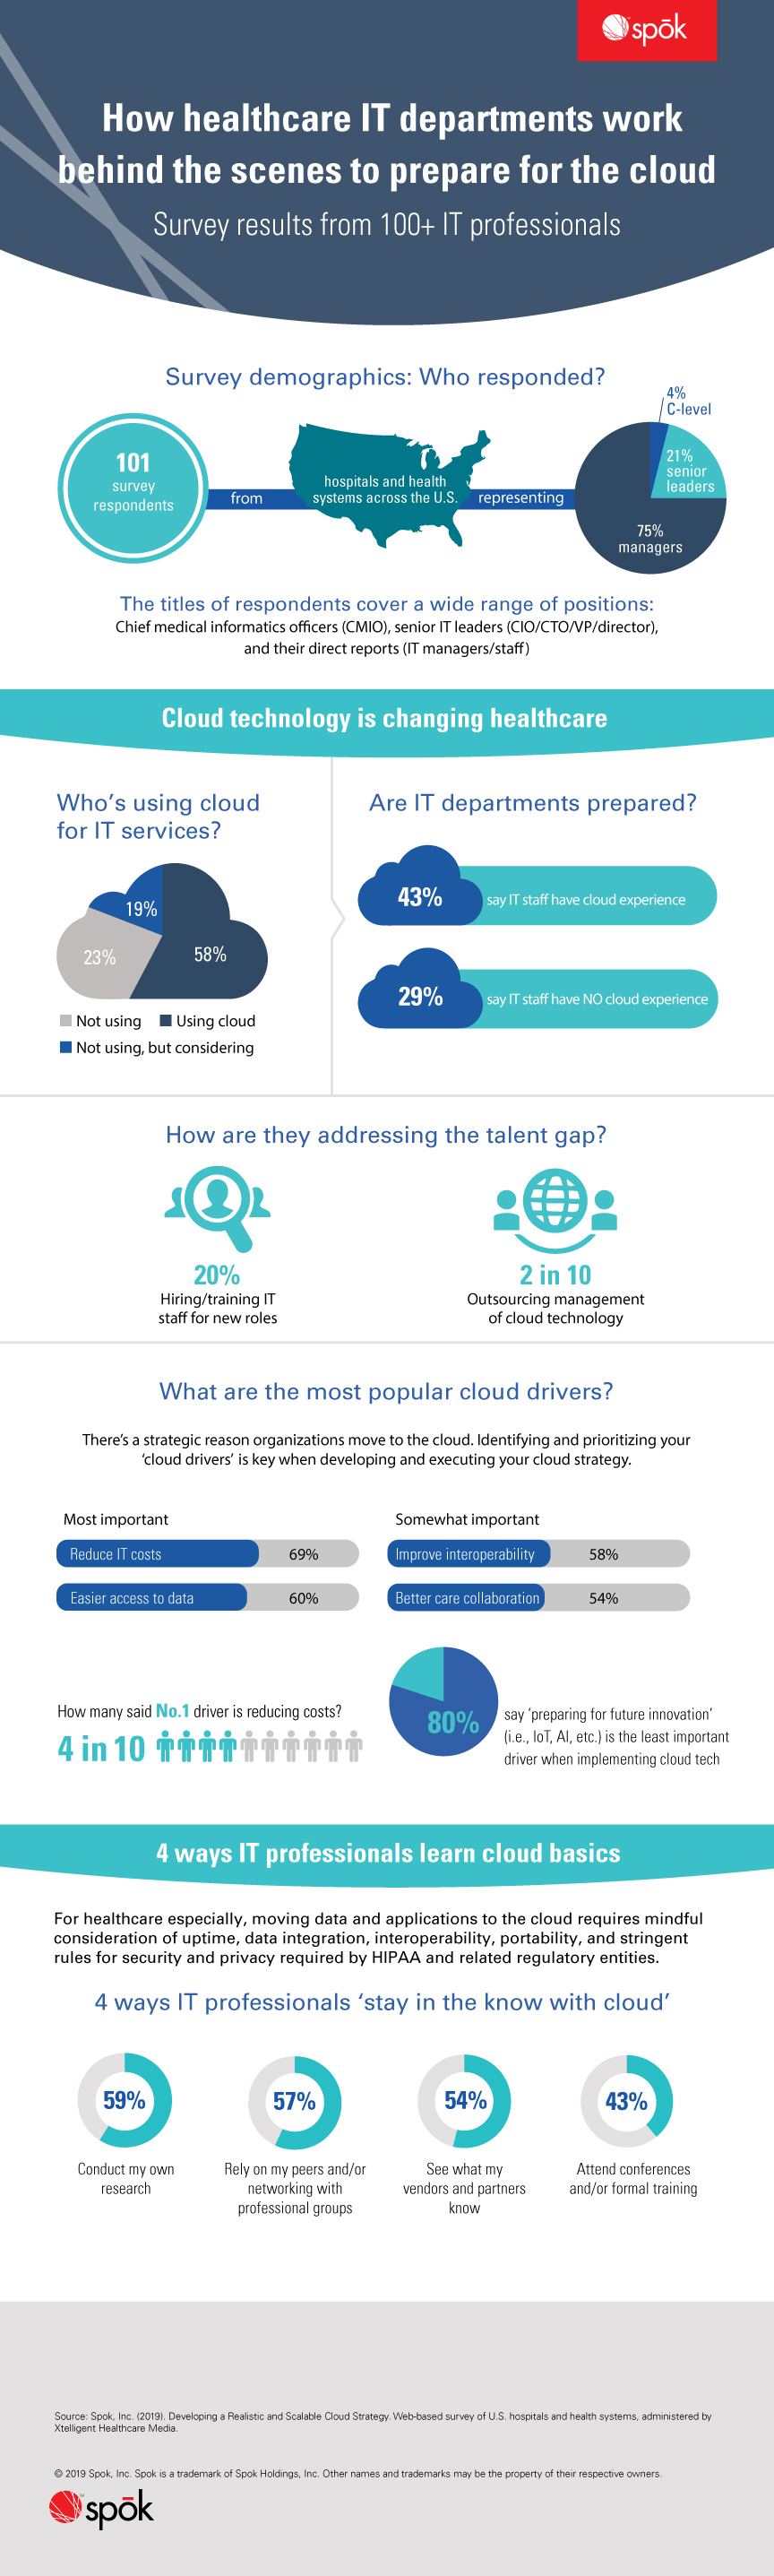 How healthcare IT departments work behind the scenes to prepare for the cloud